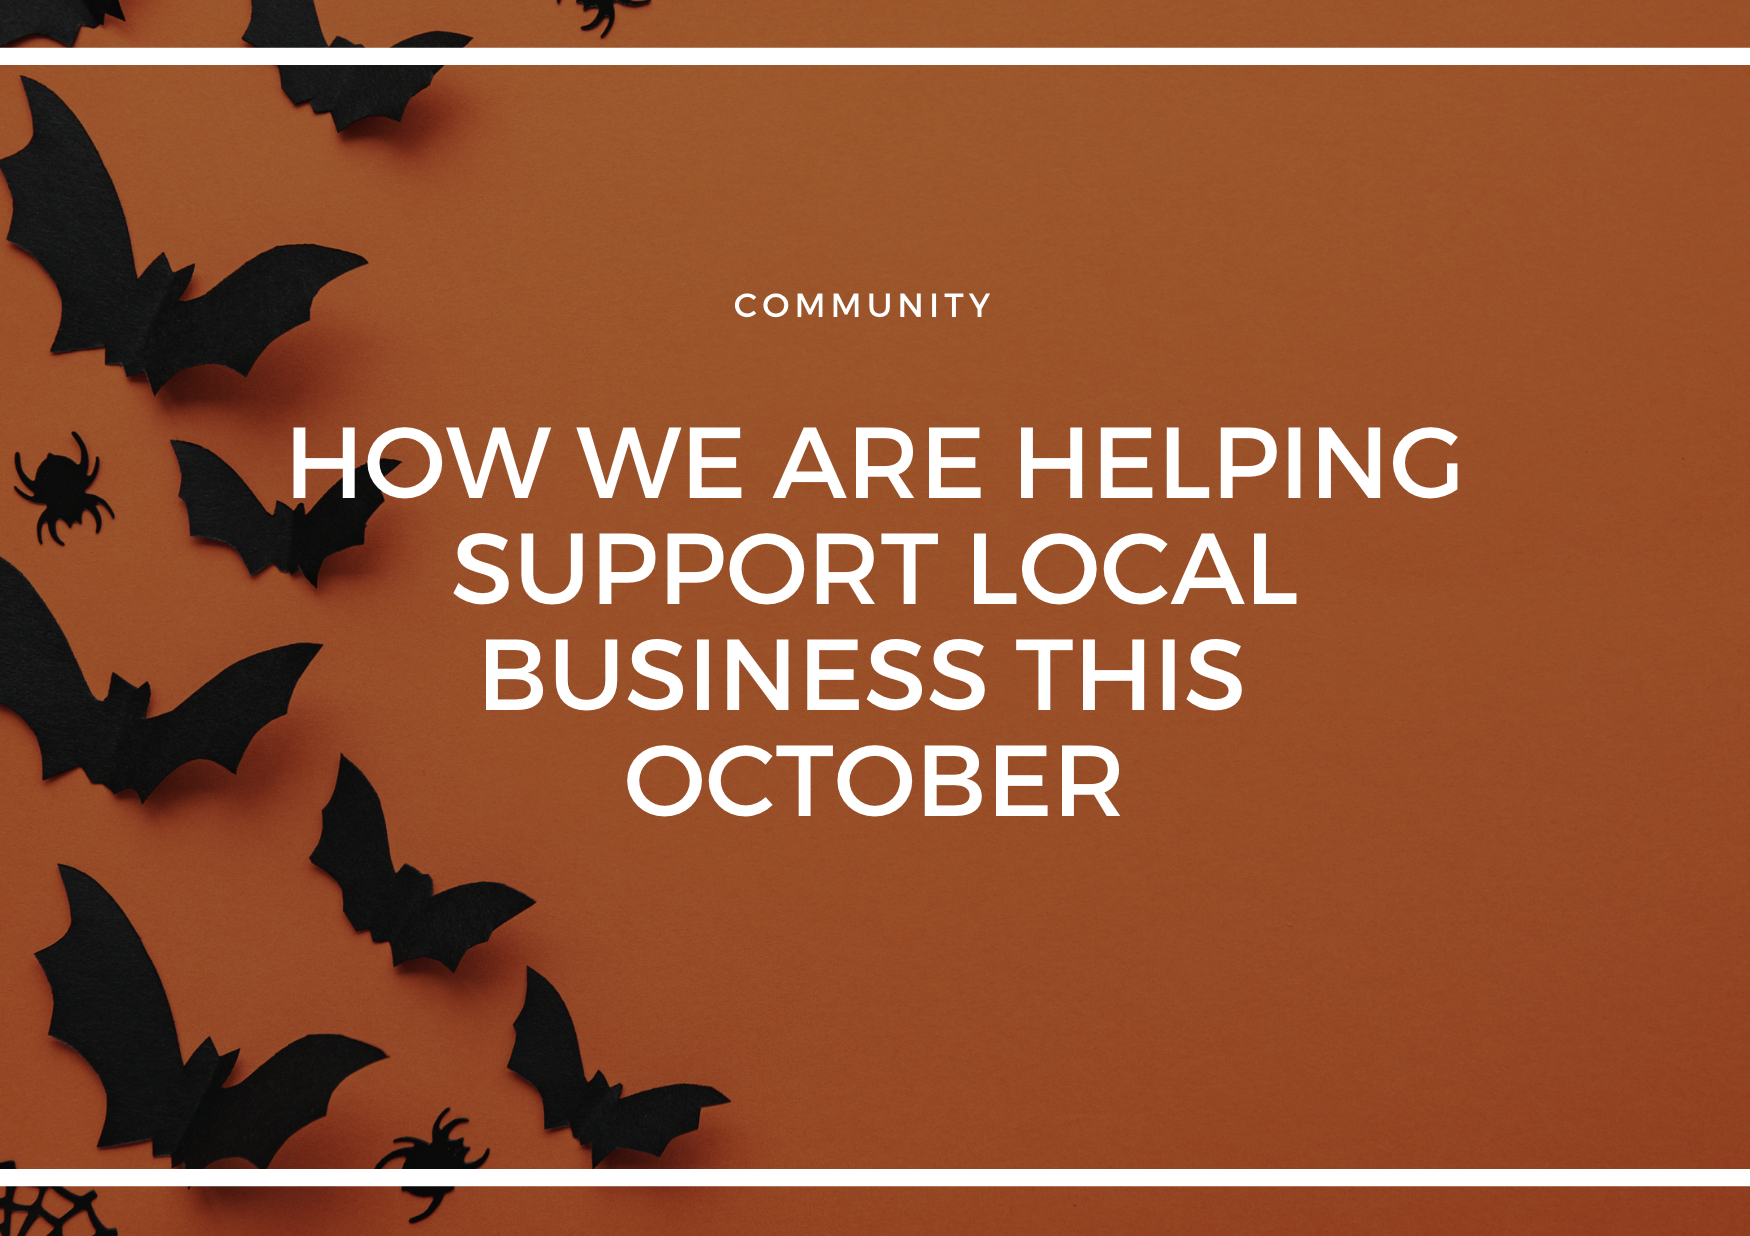 HOW WE ARE HELPING SUPPORT LOCAL BUSINESS THIS OCTOBER & YOU CAN TOO